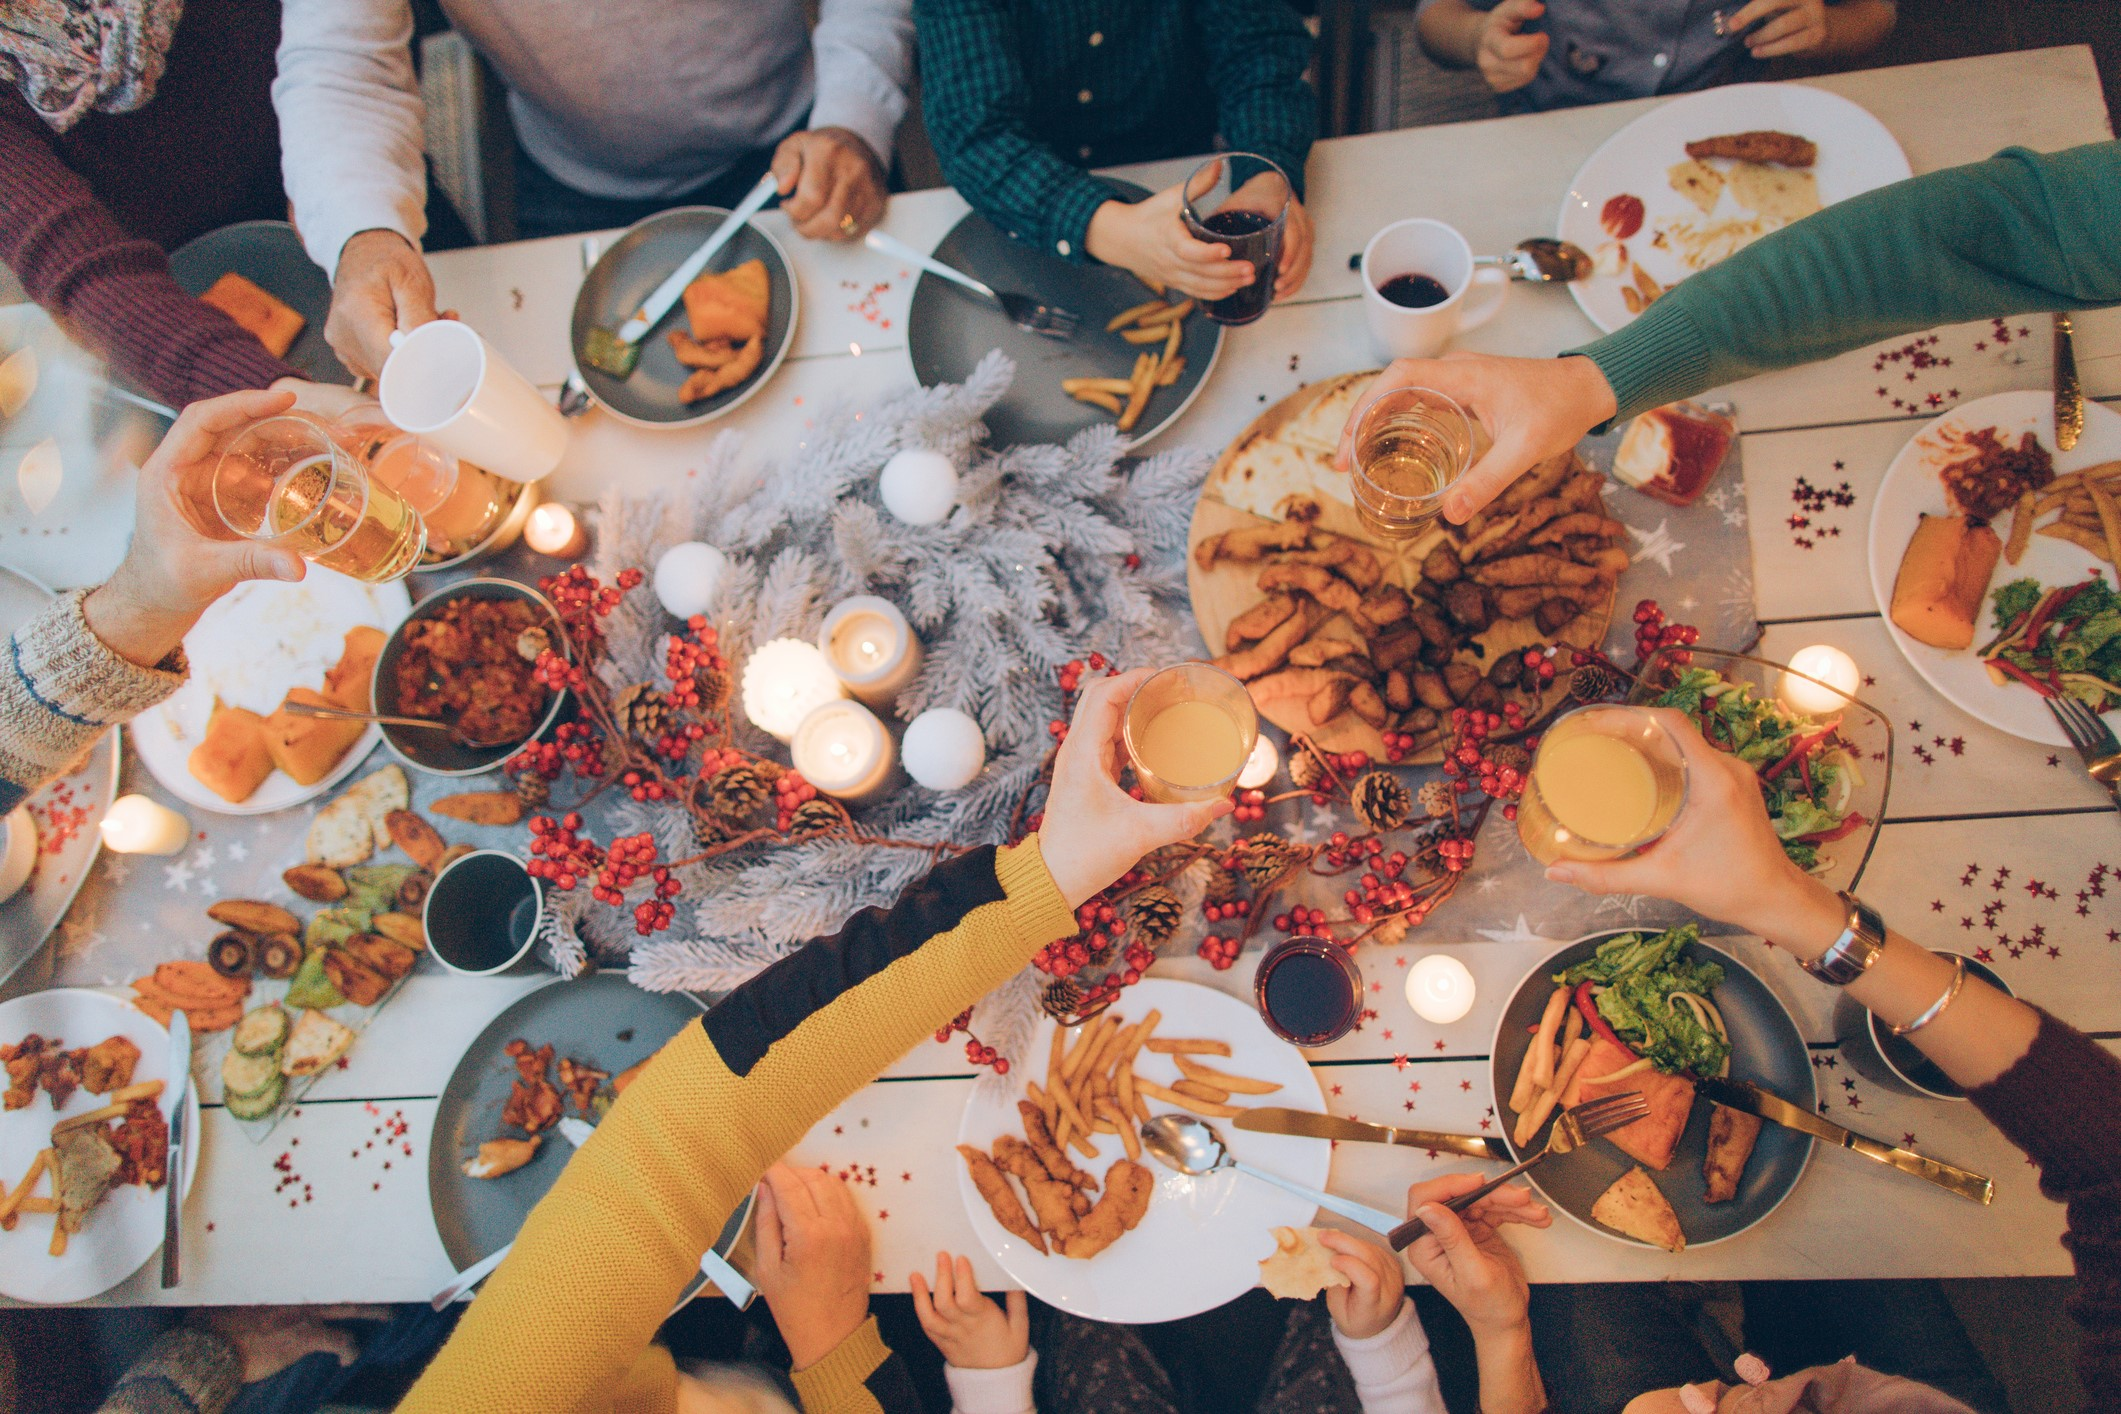 7 Tips for Cooking Thanksgiving Dinner While Camping